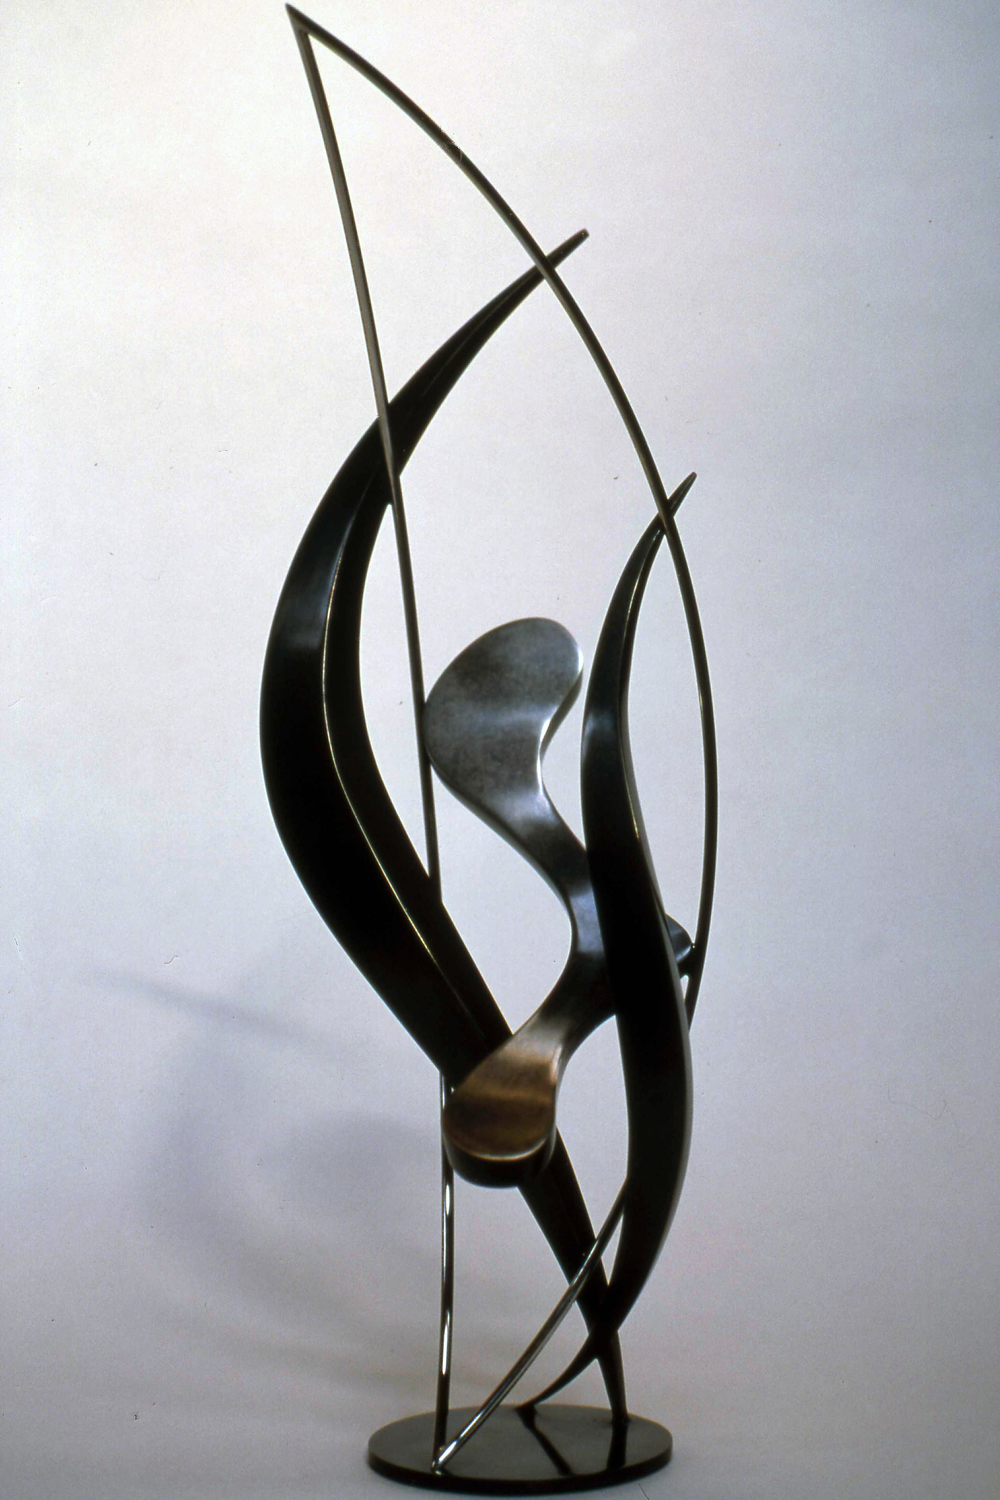 Synergetic #2, bronze